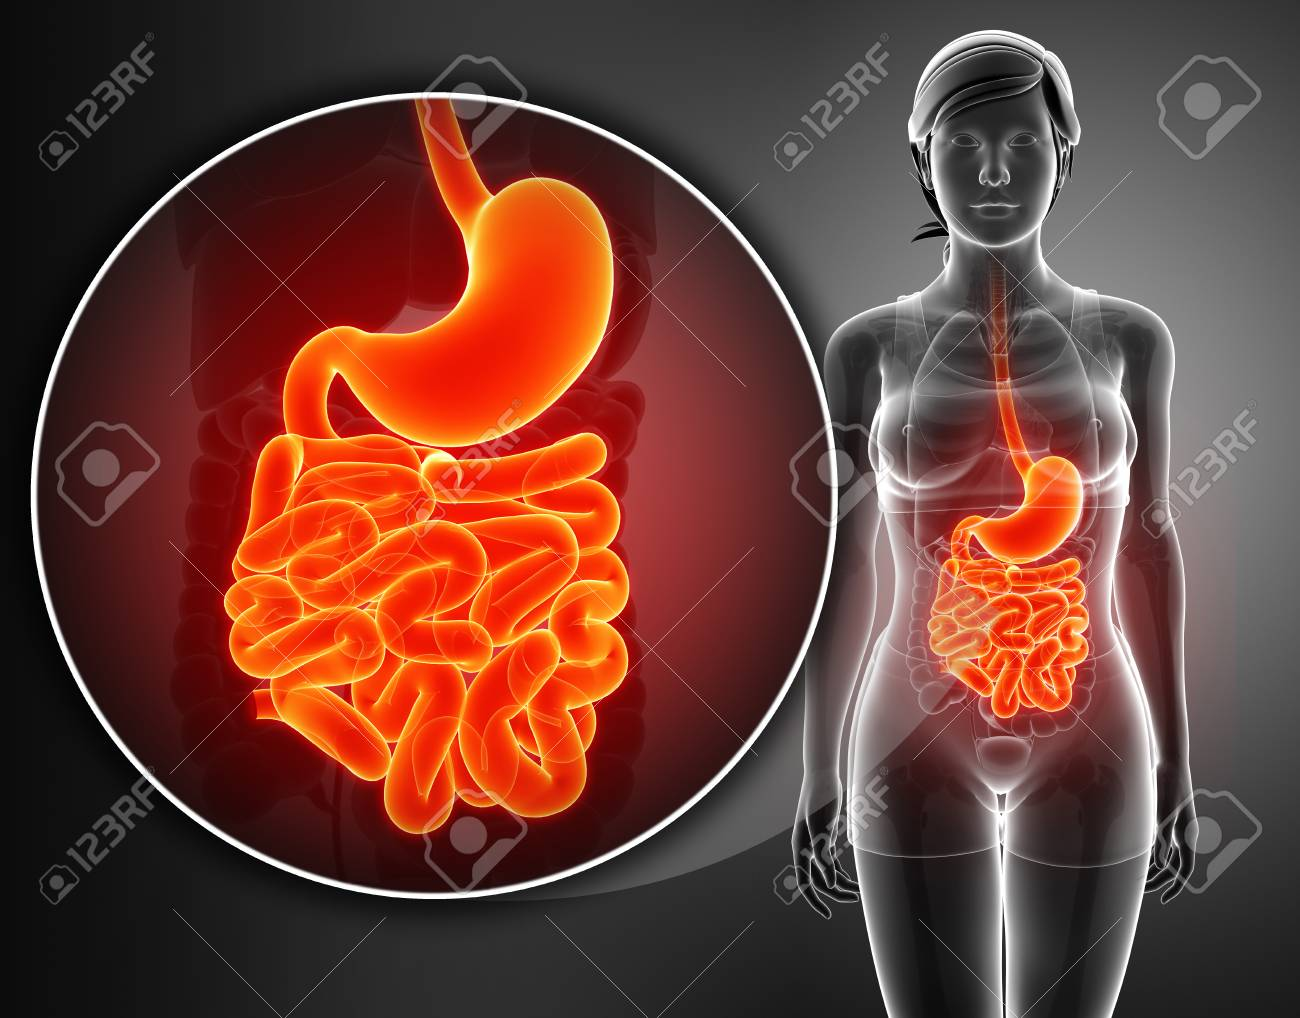 Small Intestine Anatomy Stock Photo Picture And Royalty Free Image